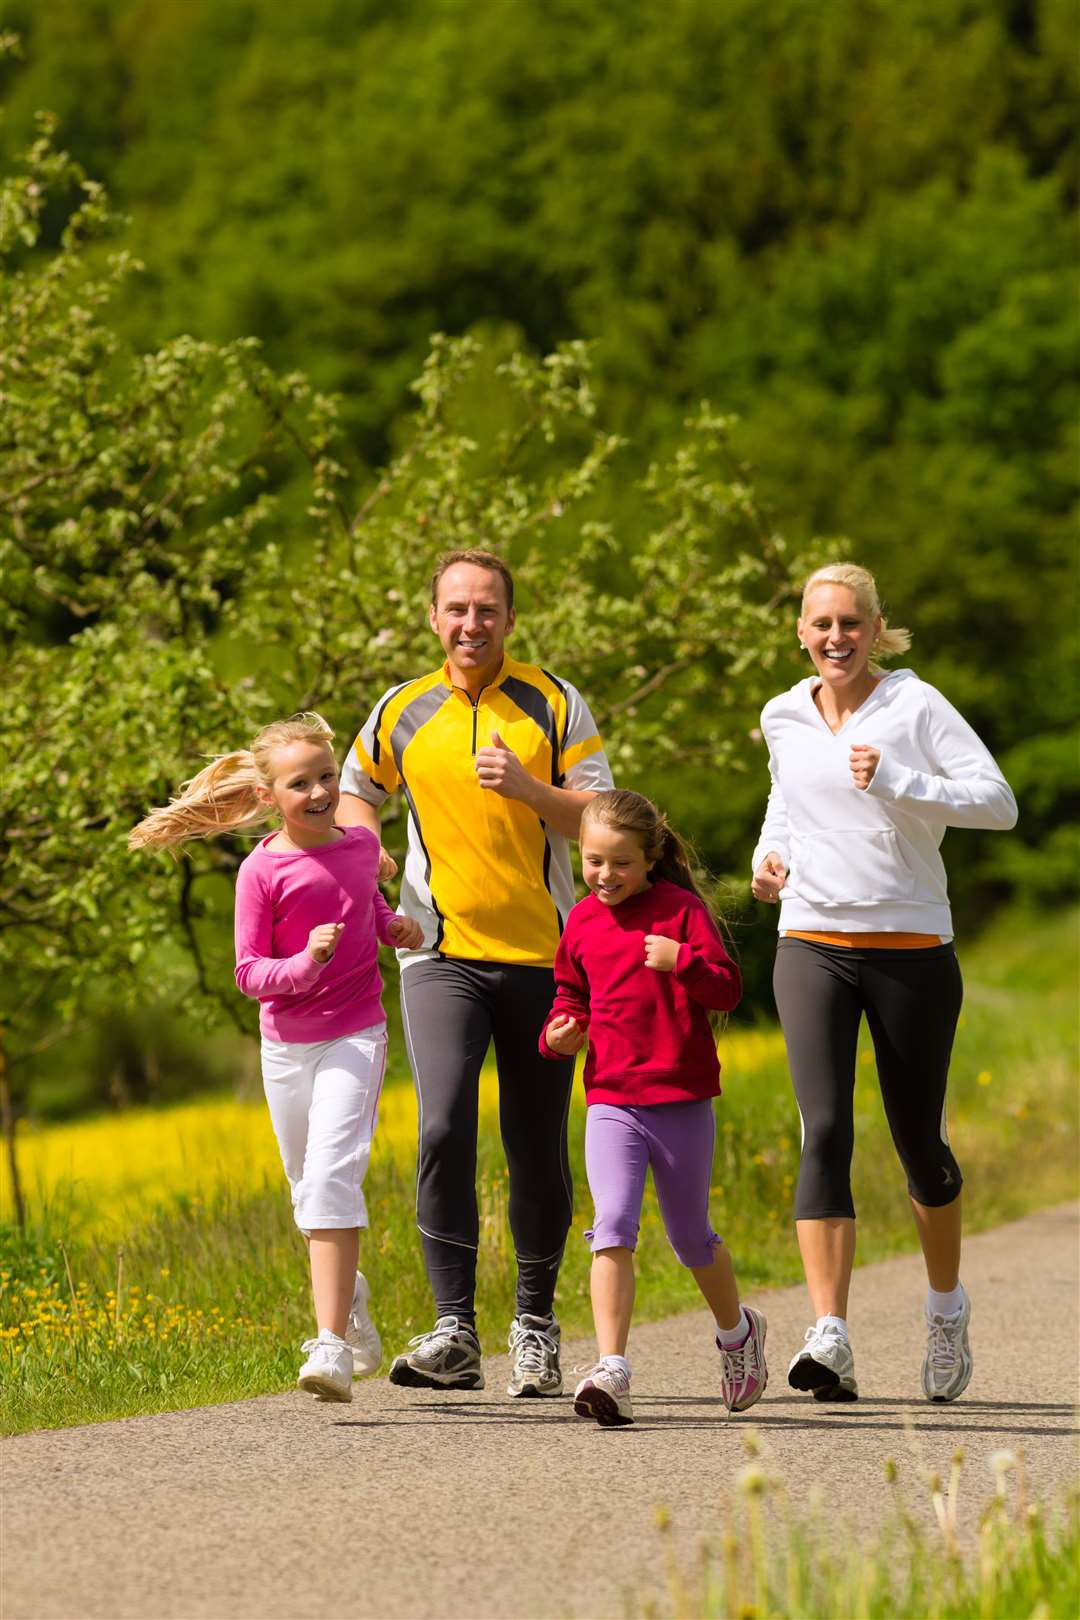 Keeping fit: Jogging, cycling and swimming are good for your health and are enjoyable too.